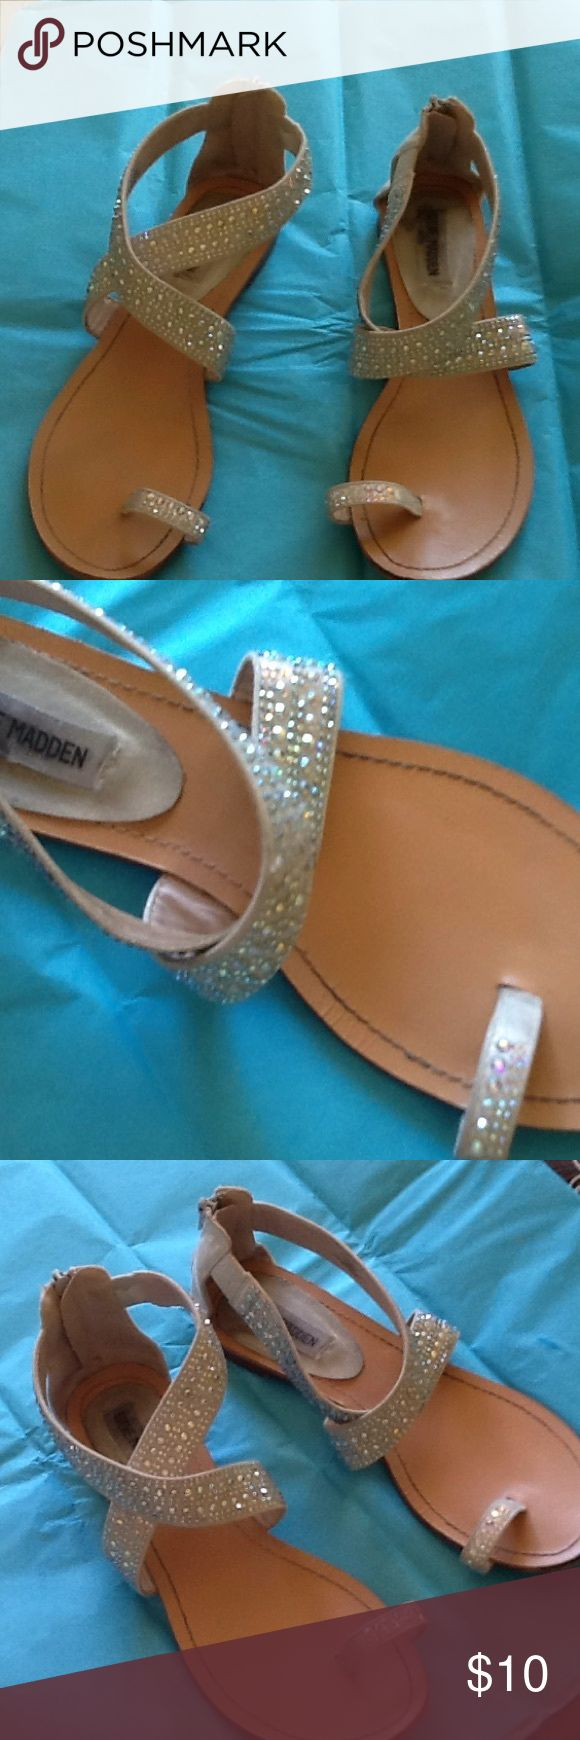 Cute summer sandals slightly worn Cute sandals that zip up the back  Very neutral to go with any summer outfit Steve Madden Shoes Sandals